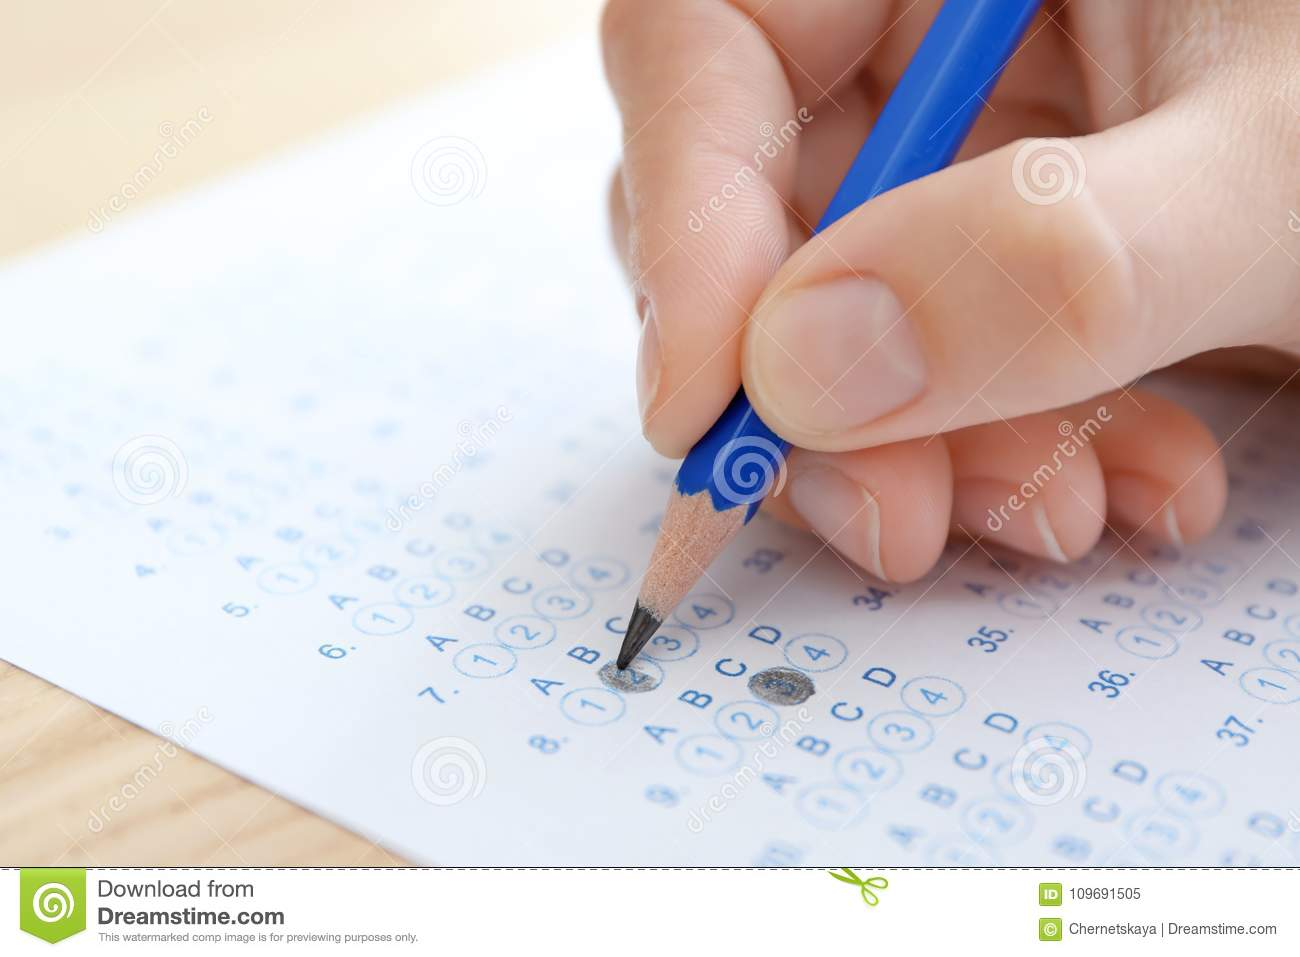 Student choosing answers in test form to pass exam